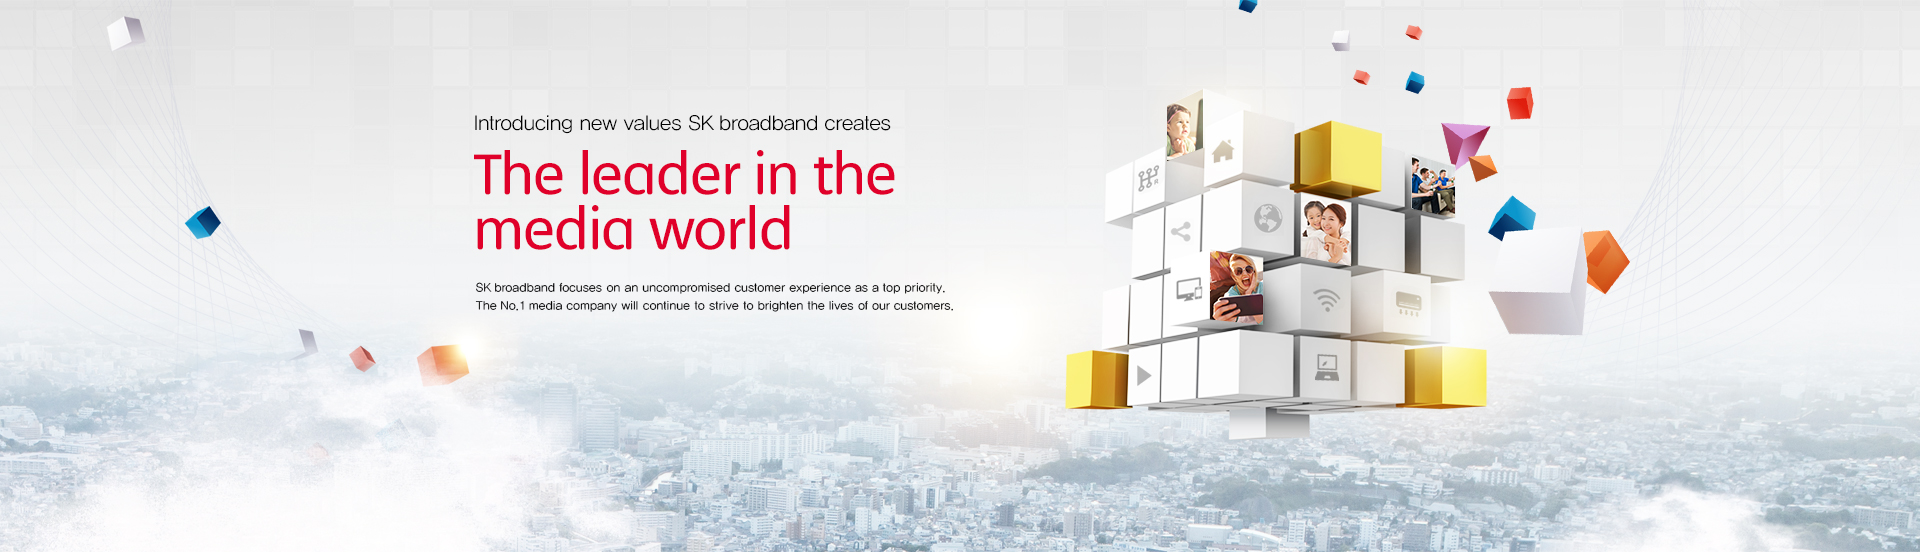 SK broadband. The new world of communications realized by boundless possibilities. The new leader in communications, SK broadband is here for you! SK broadband opens up new possibilities to brighten the lives of our customers.